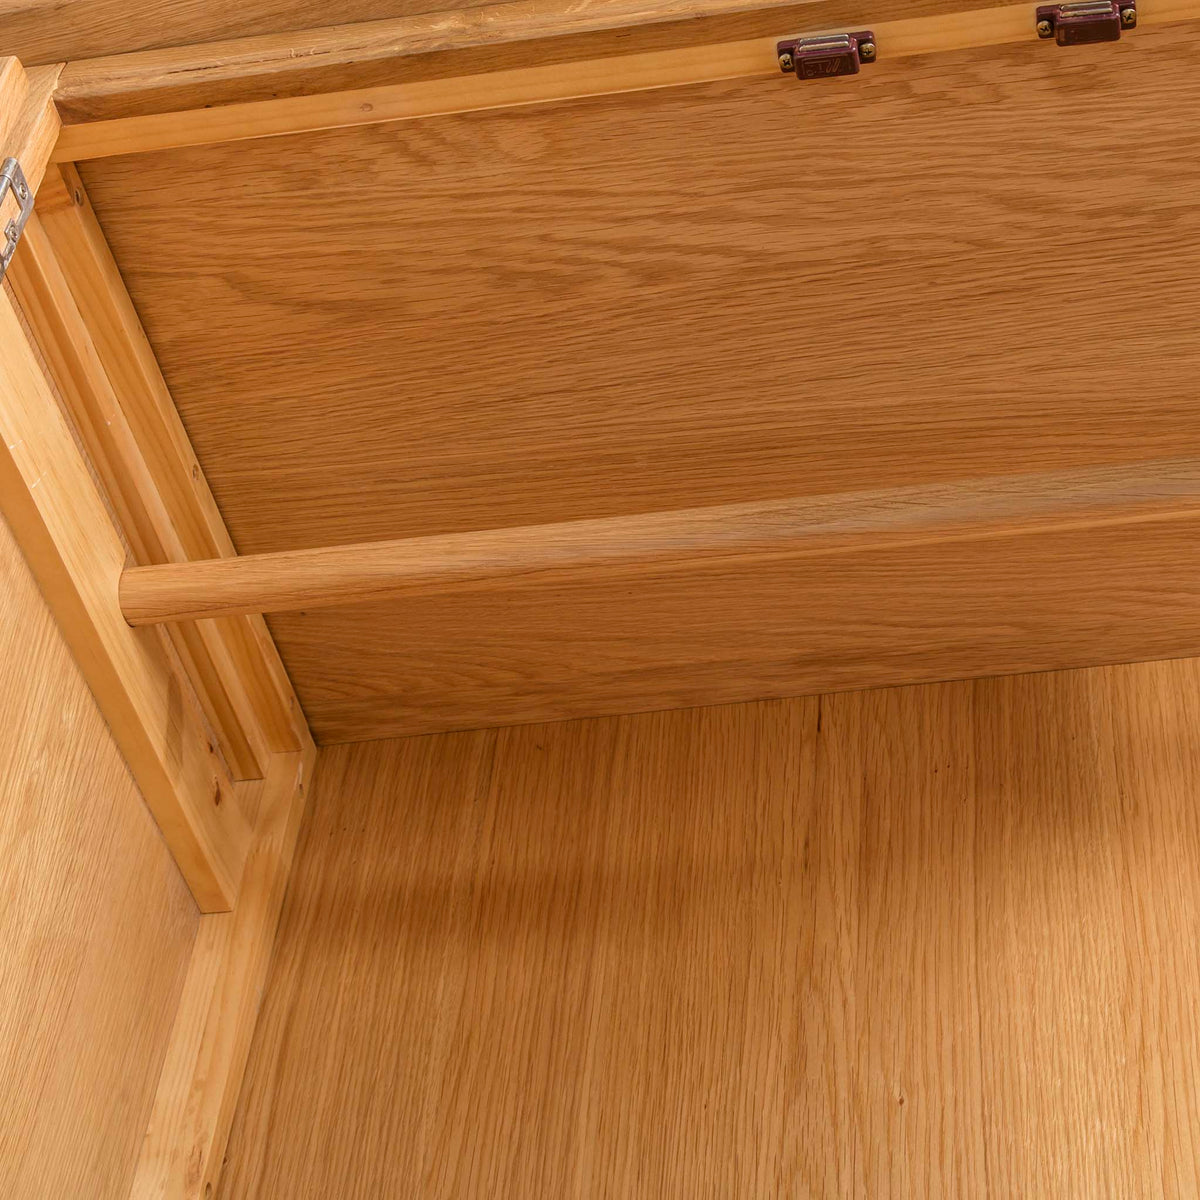 Hampshire Oak Triple Wardrobe with Drawers - Looking up at hanging rail